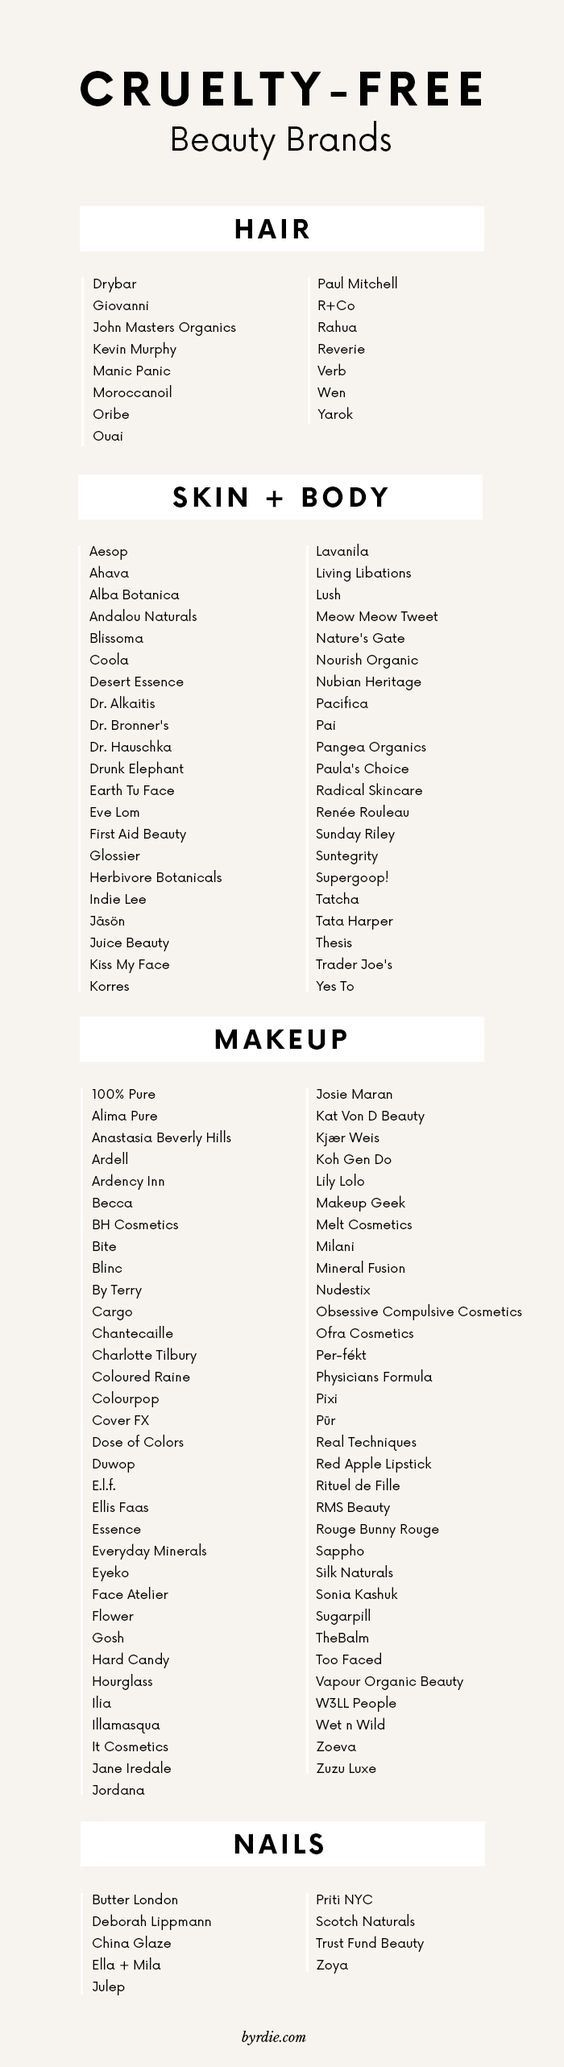 The Beginner's Guide to Natural and Organic Beauty Brands /skin care & makeup tips for older women / cruelty free products /products I love